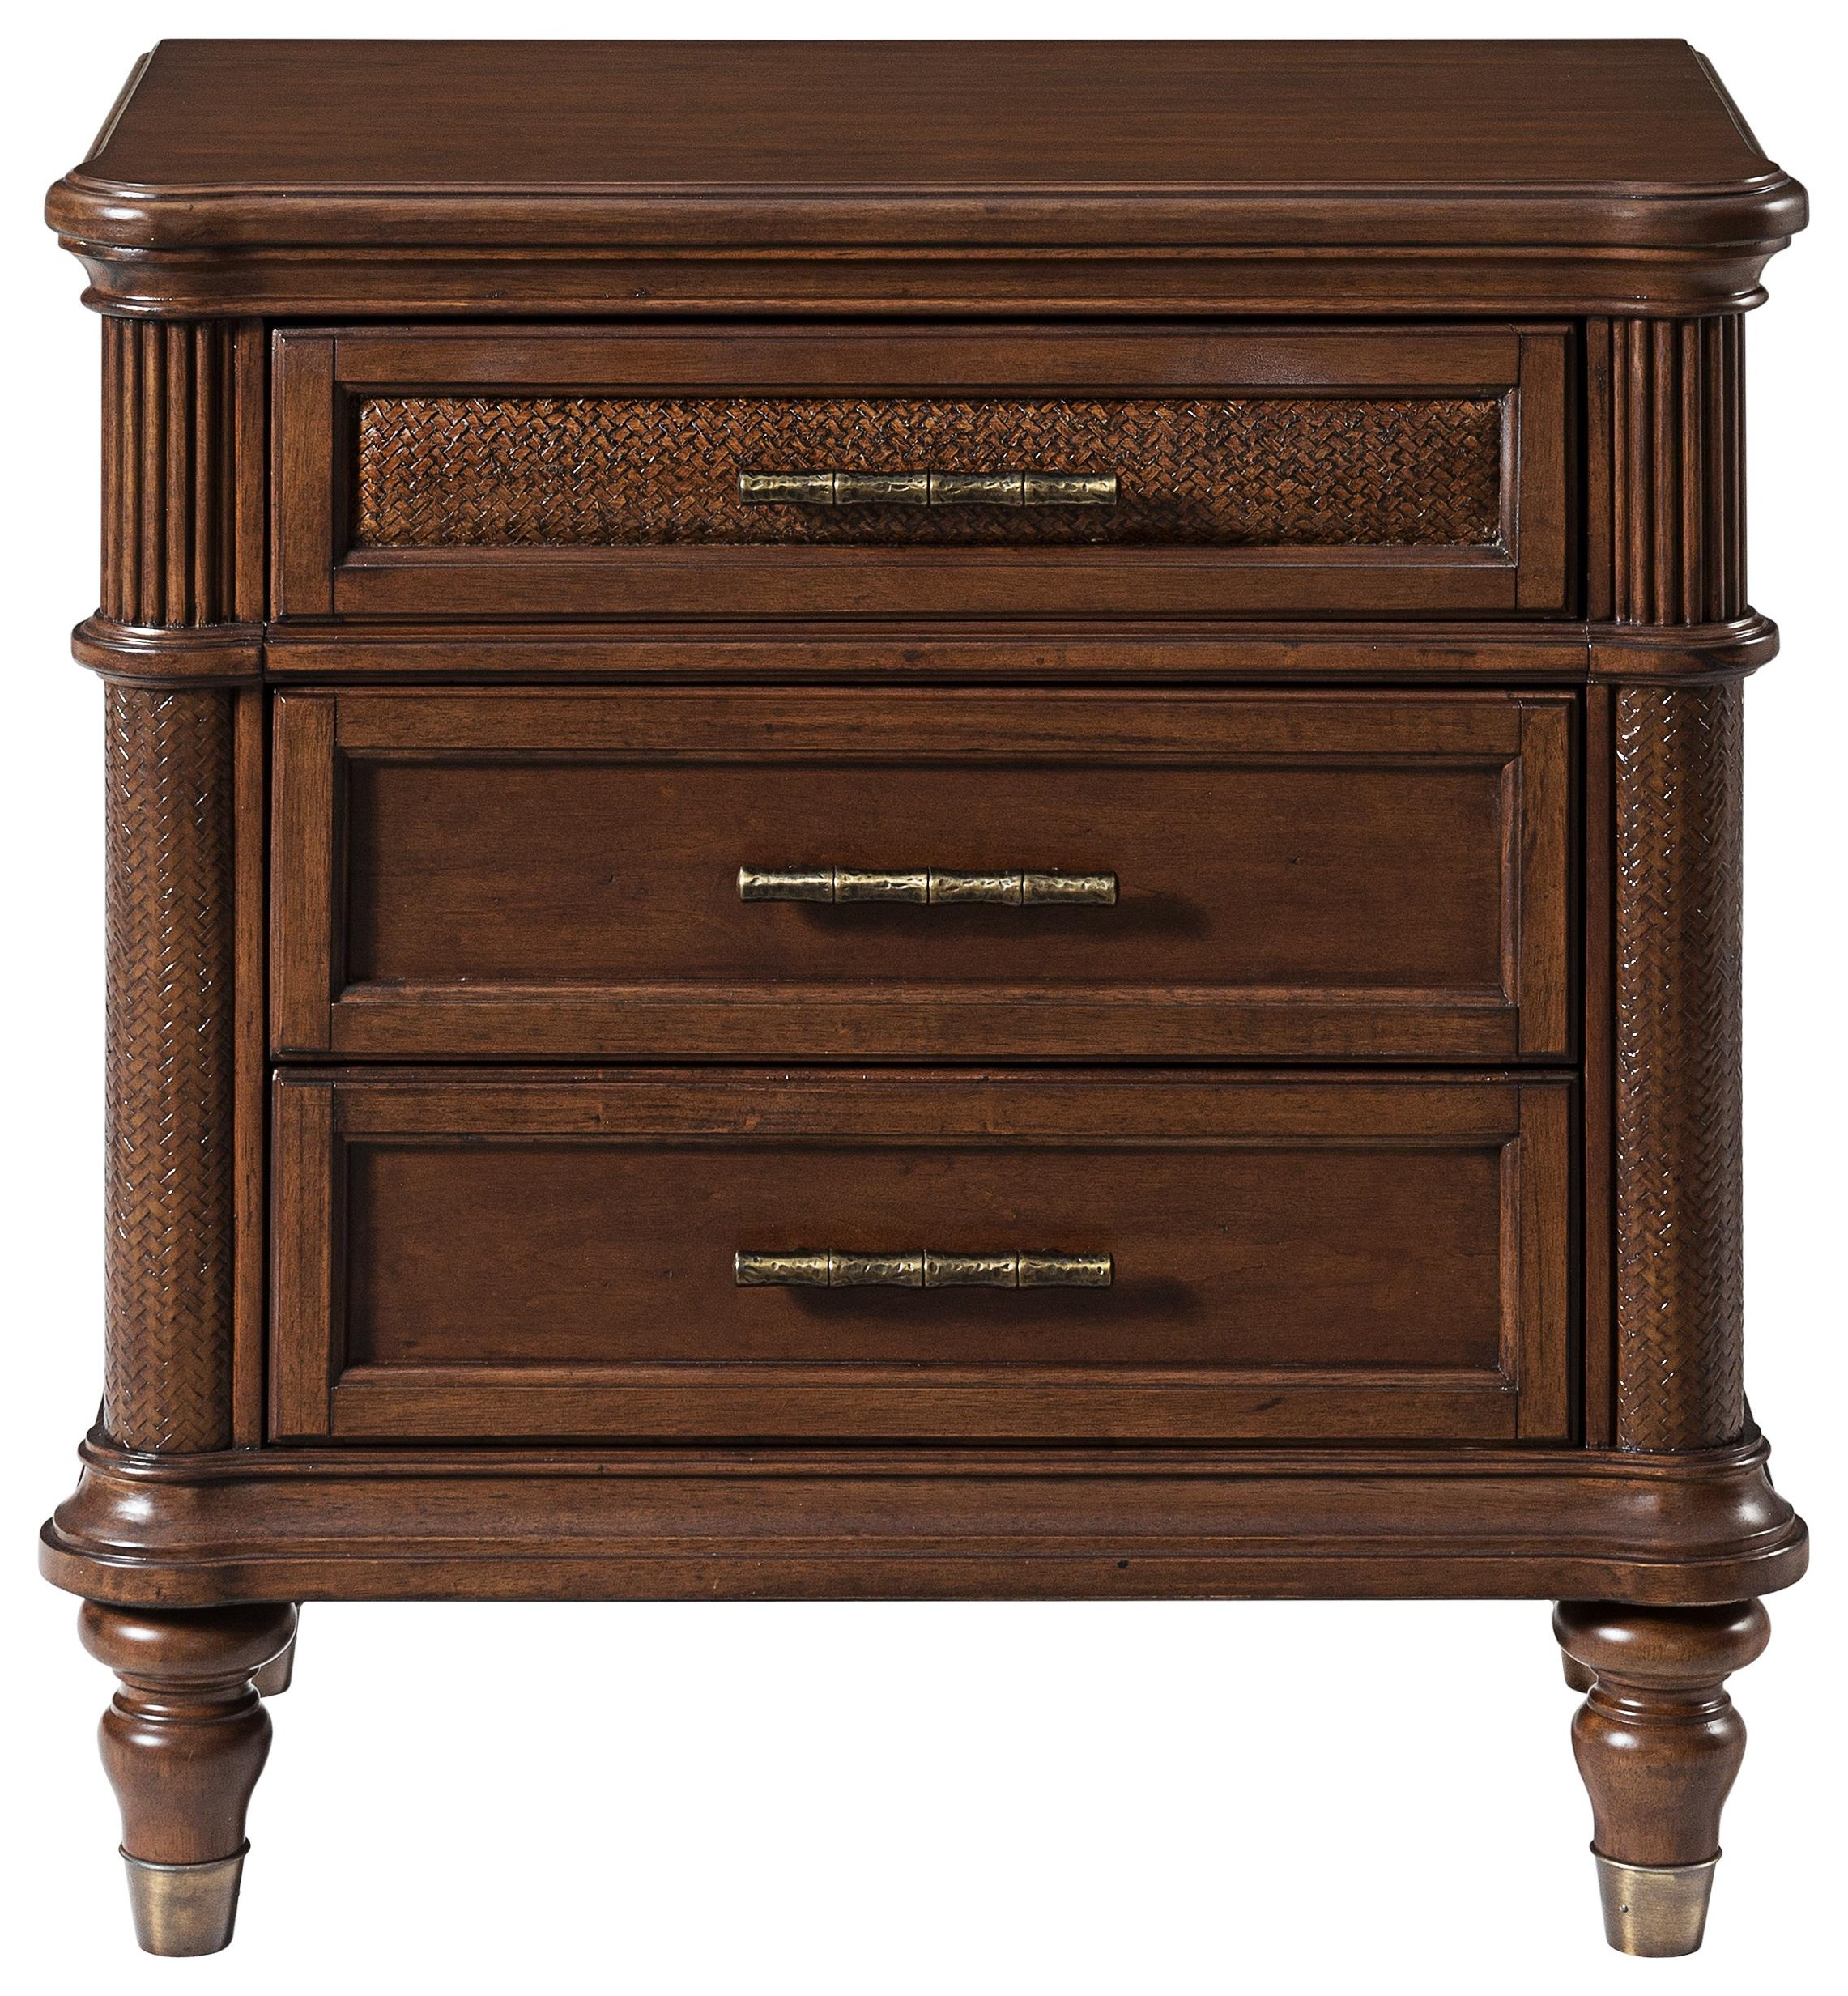 Tropical Breeze Nightstand by Stillwater Furniture at Baer's Furniture